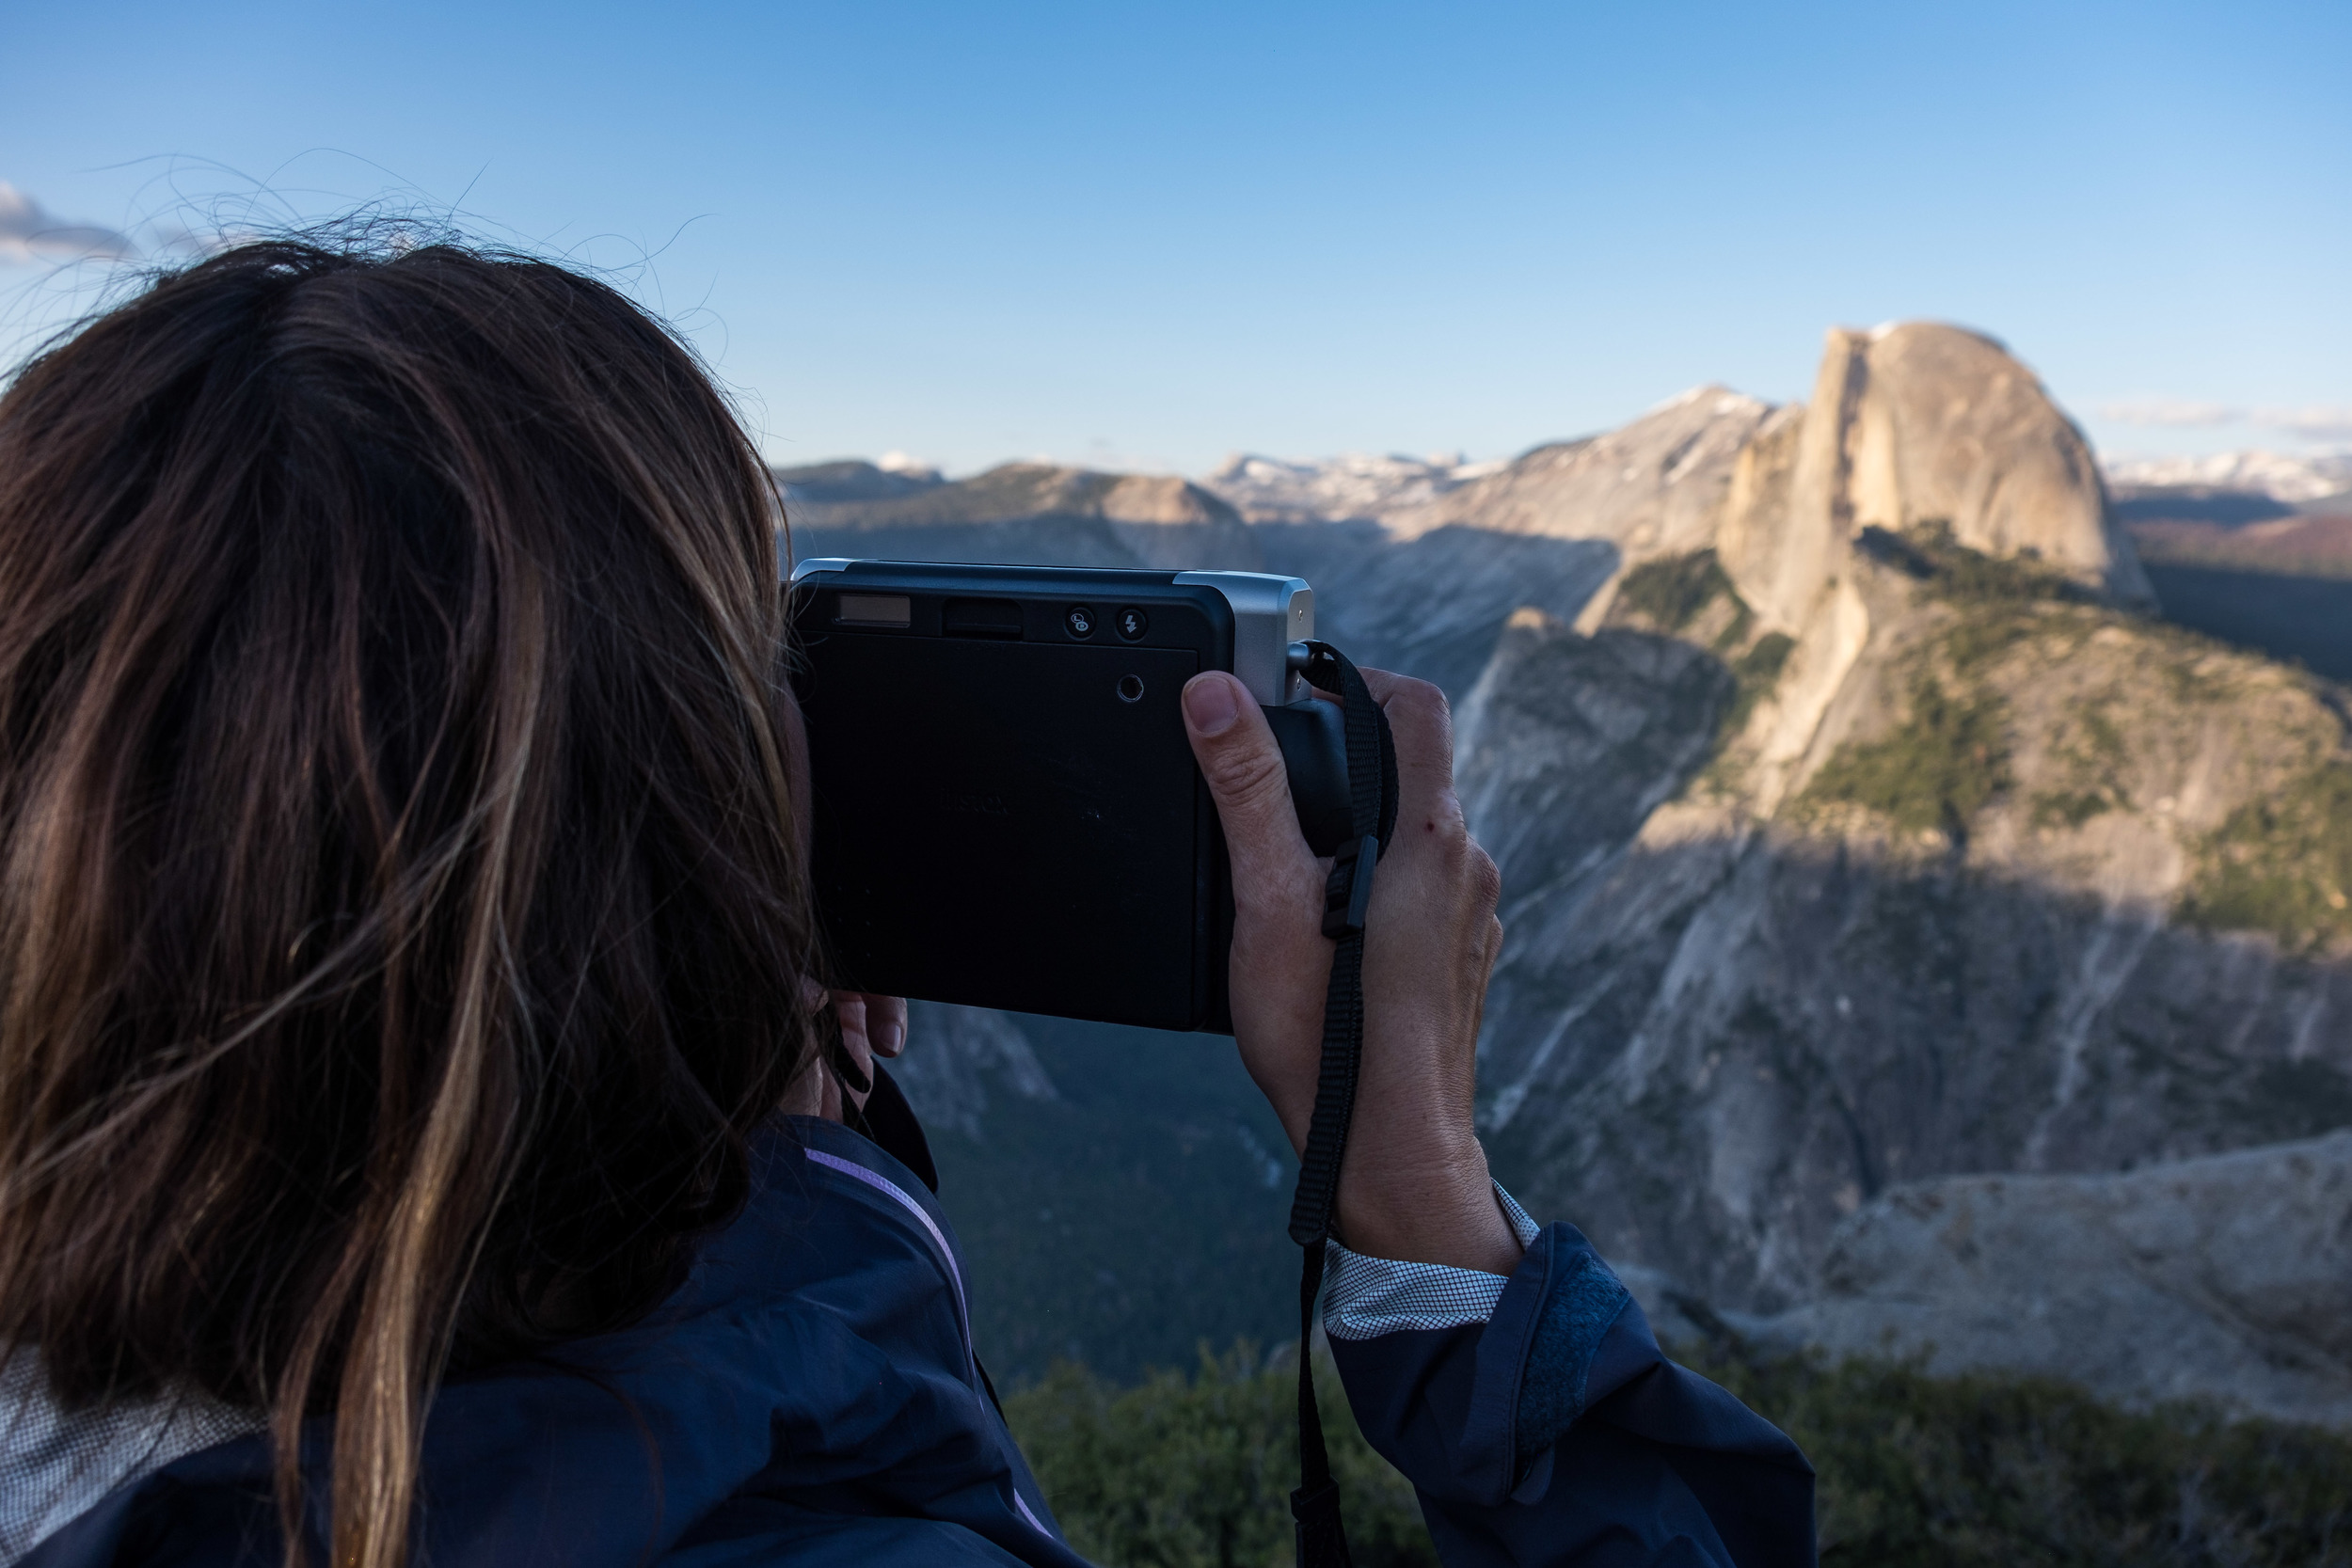 Want to meet the most prolific Fujifilm Instaxer roaming the United States today? This is Stefanie at Yosemite National Park, capturing the beauty of Glacier Point.